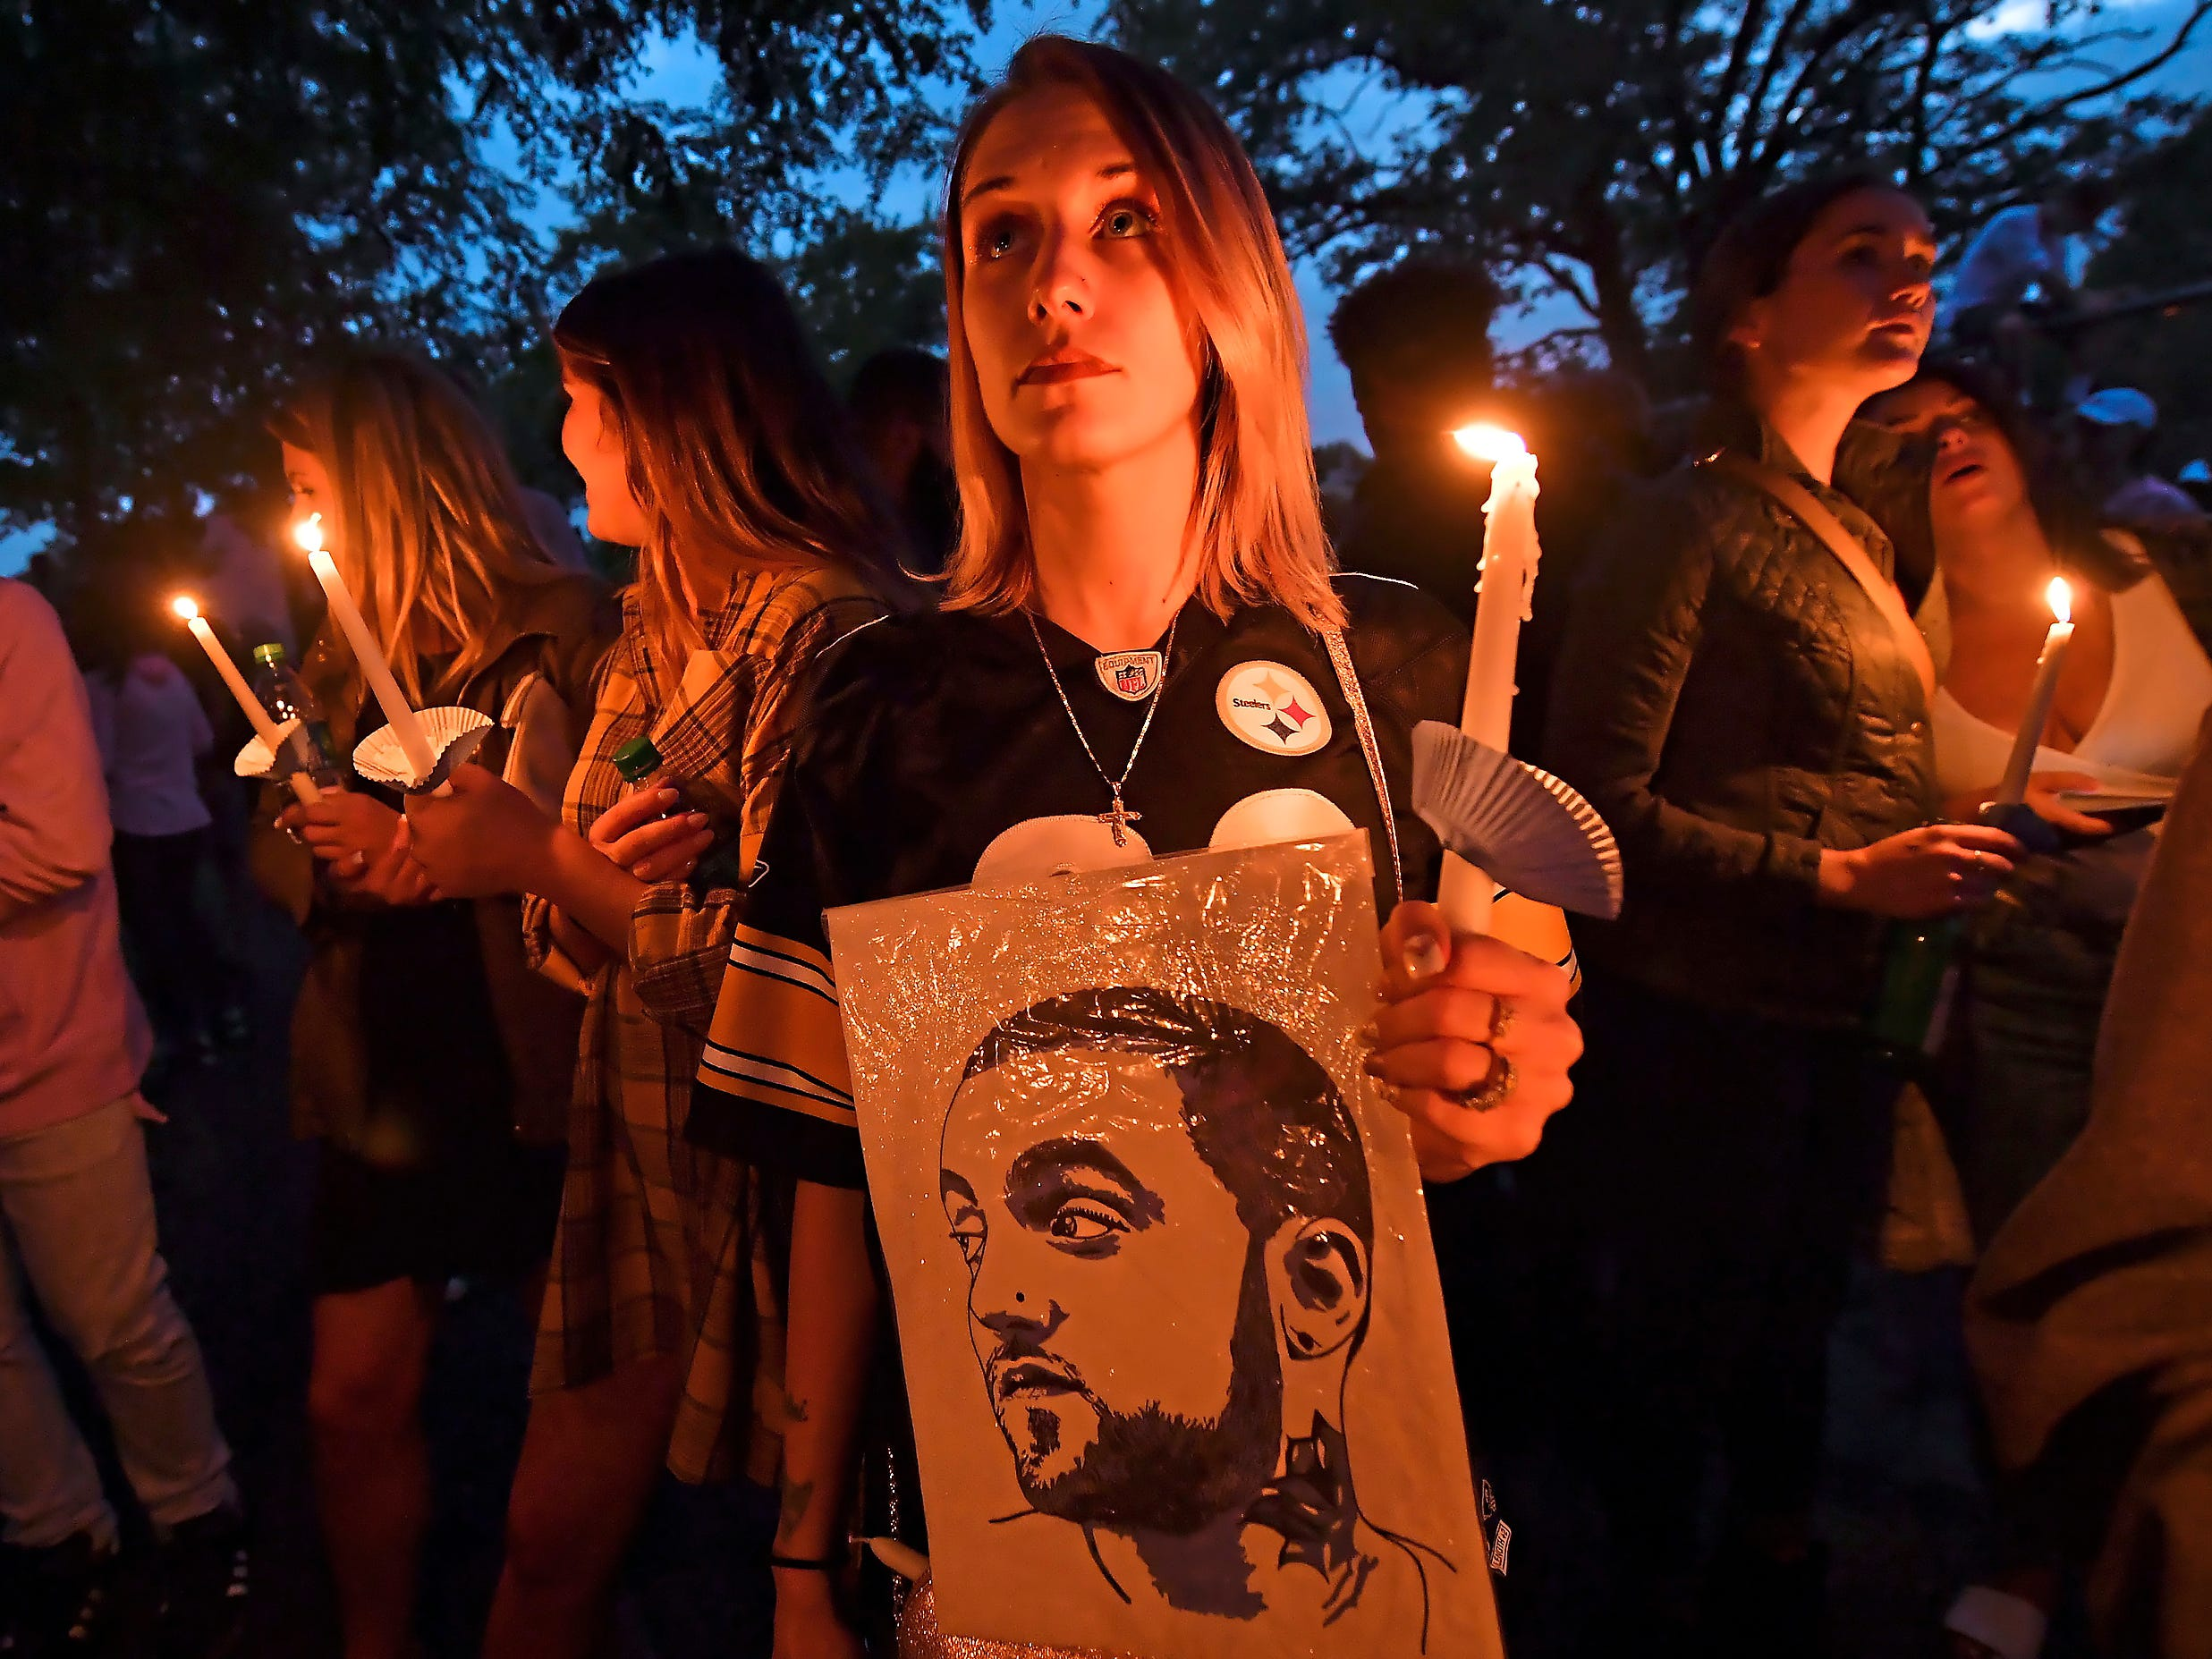 Andrea Grimm, 30, of the North Side neighborhood in Pittsburgh, holds a candle during a vigil for rapper Mac Miller, Tuesday, Sept. 11, 2018, at Blue Slide Park in Pittsburgh. Blue Slide Park was the name of Miller's debut studio album. He died last week in California.